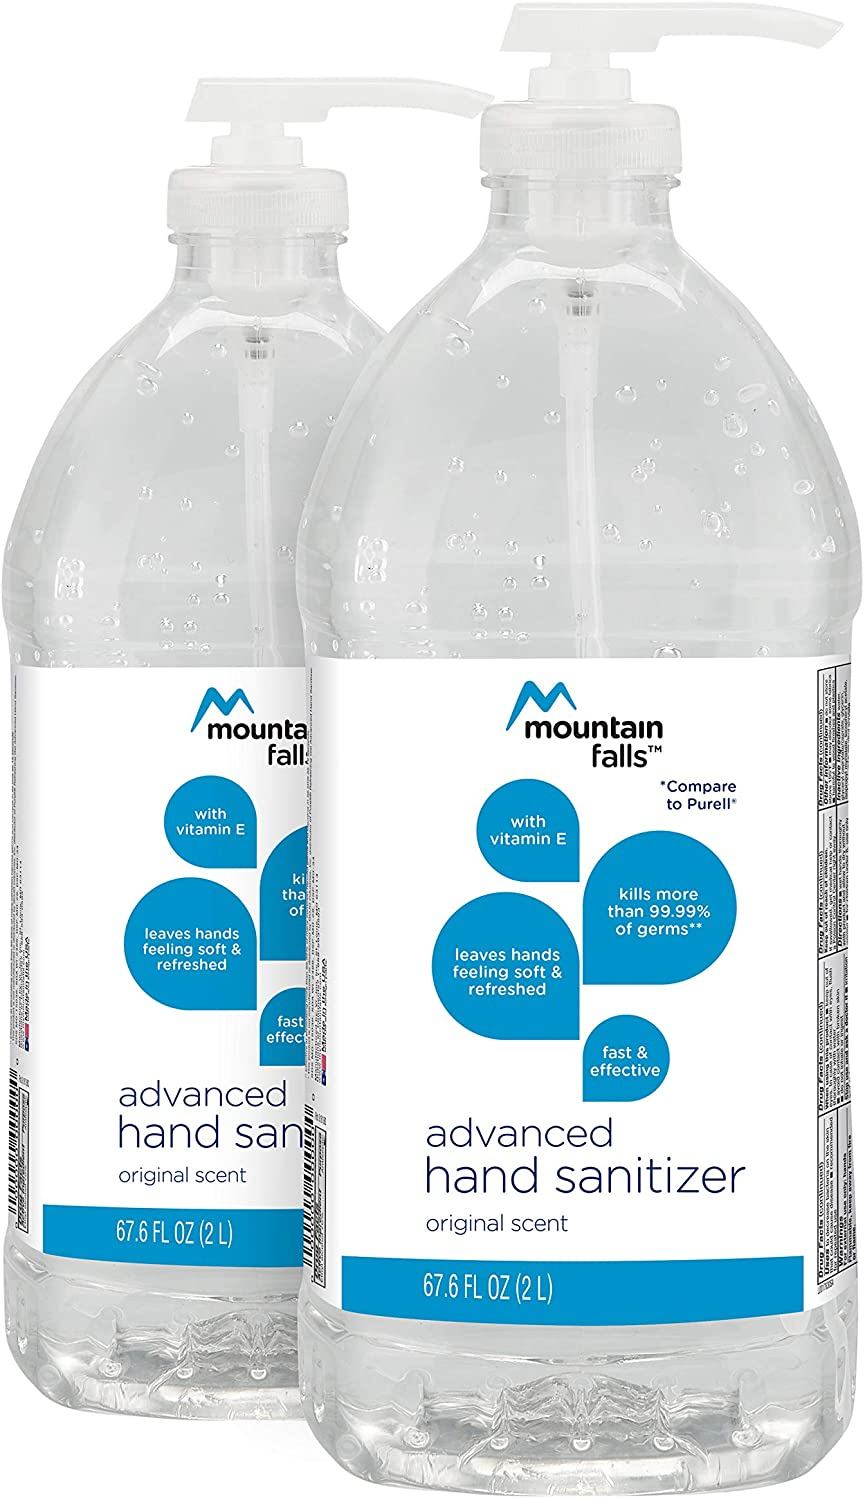 Mountain falls advanced hand sanitizer